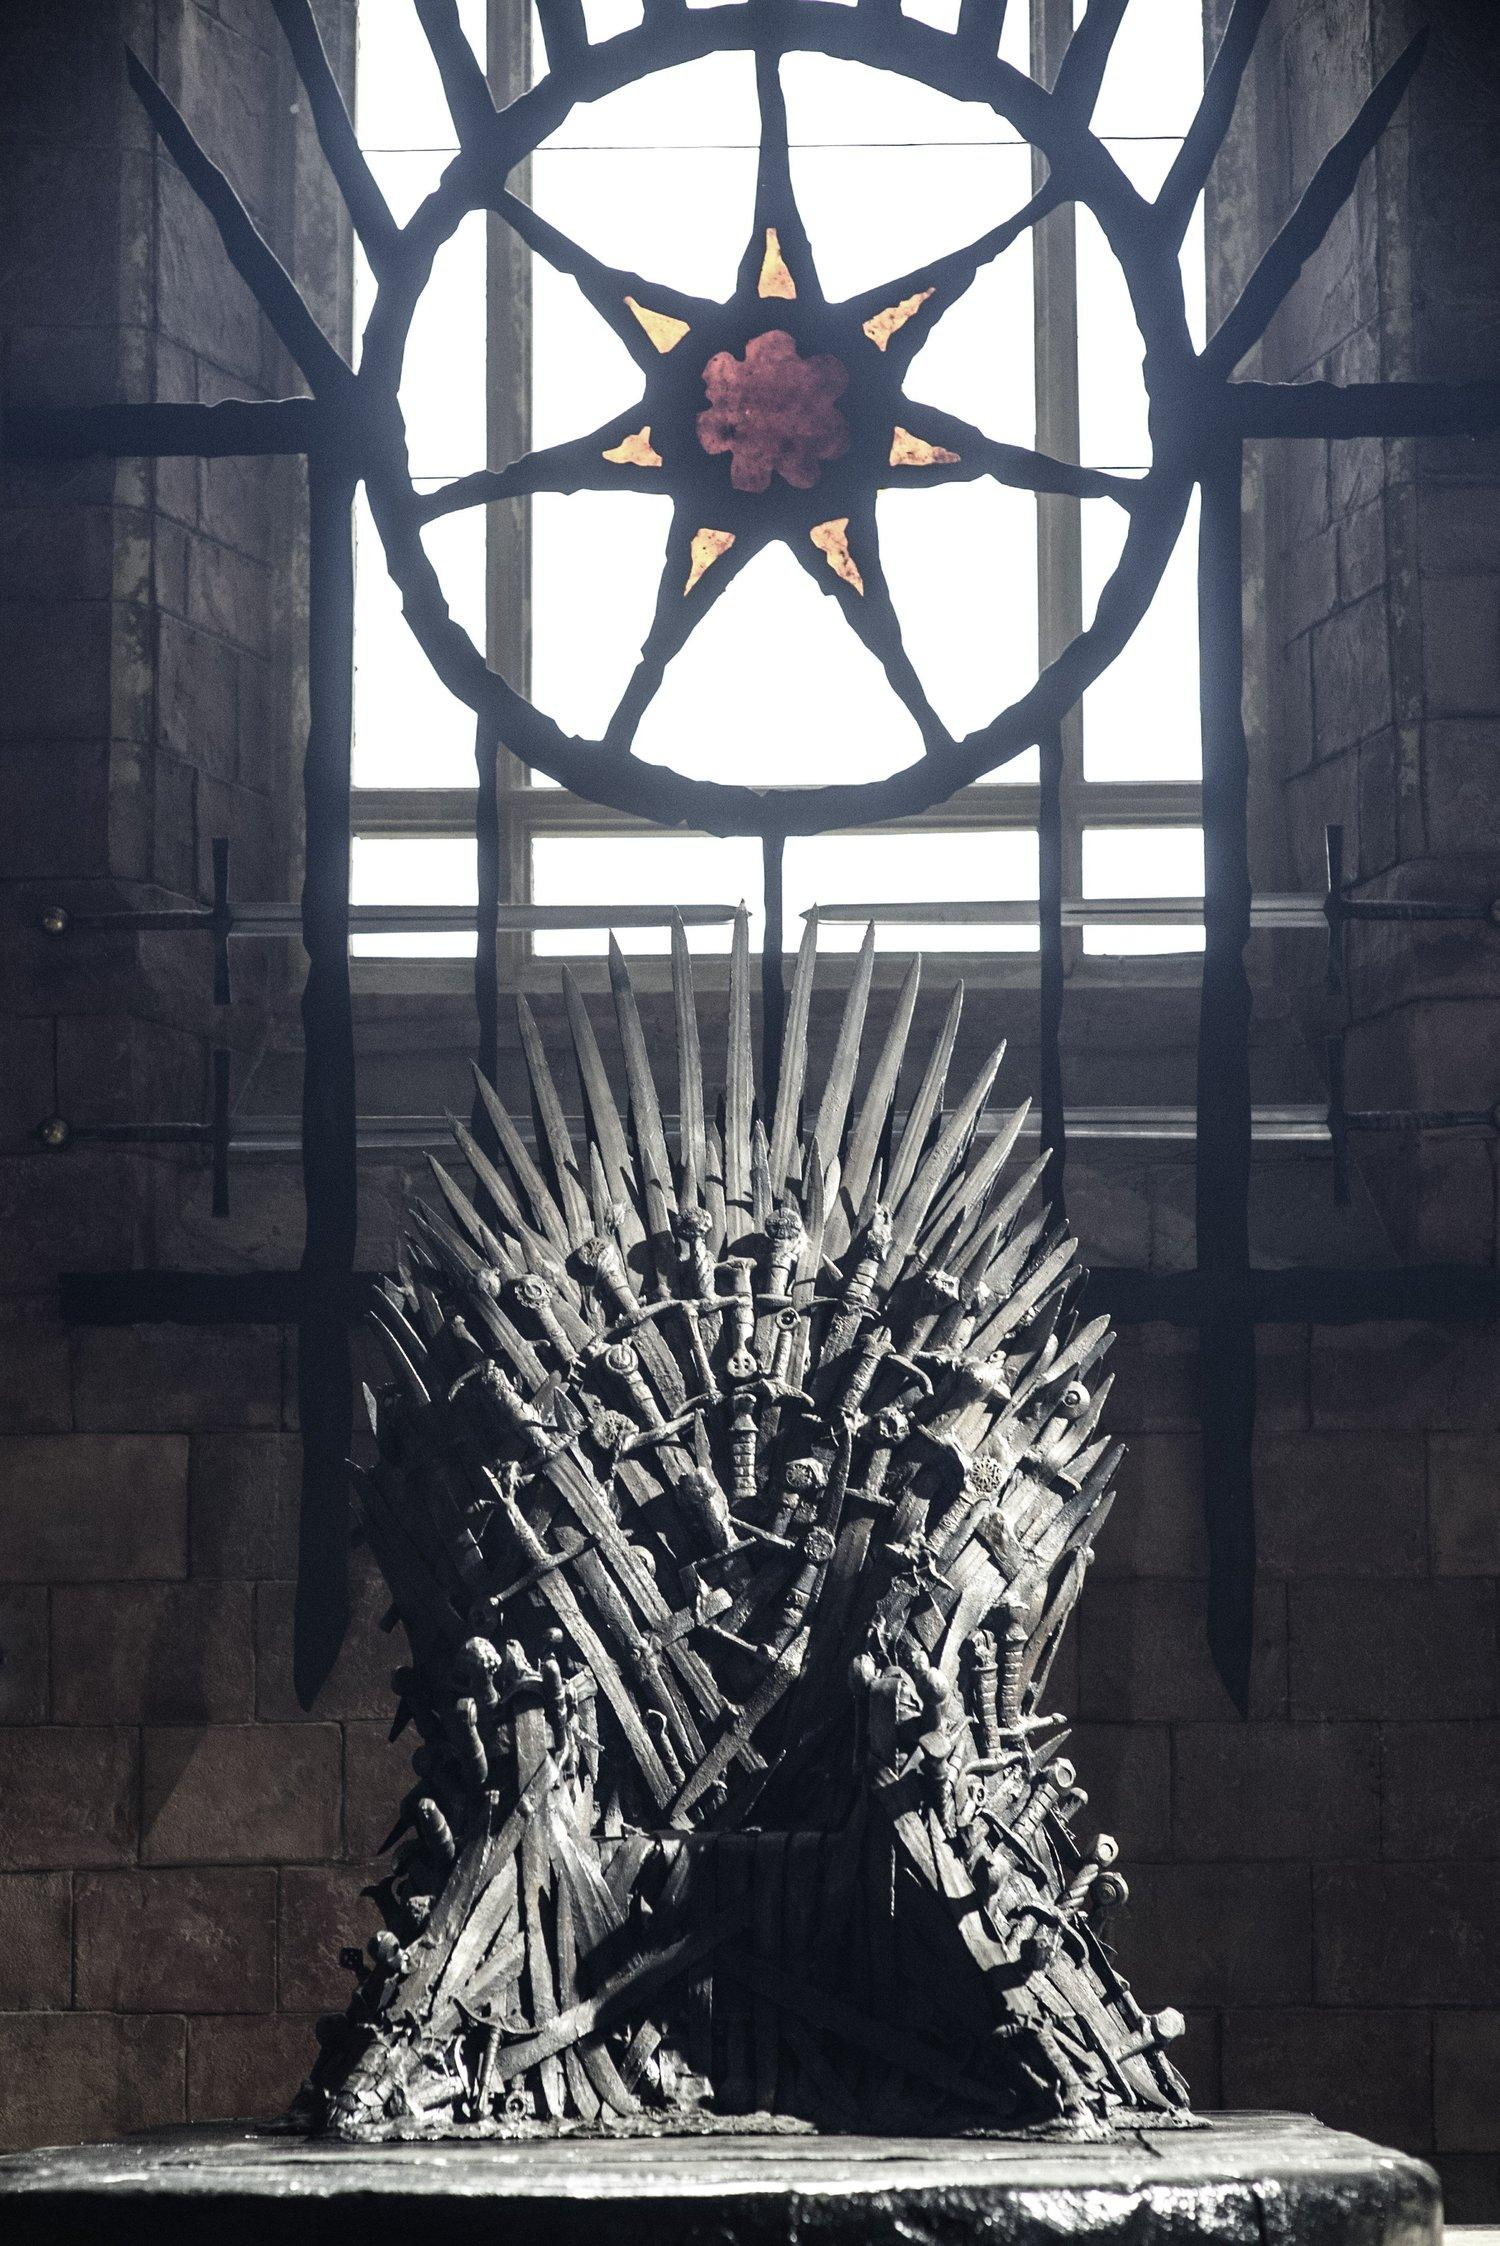 Looking forward game of thrones ep 504 where are they for Iron throne painting